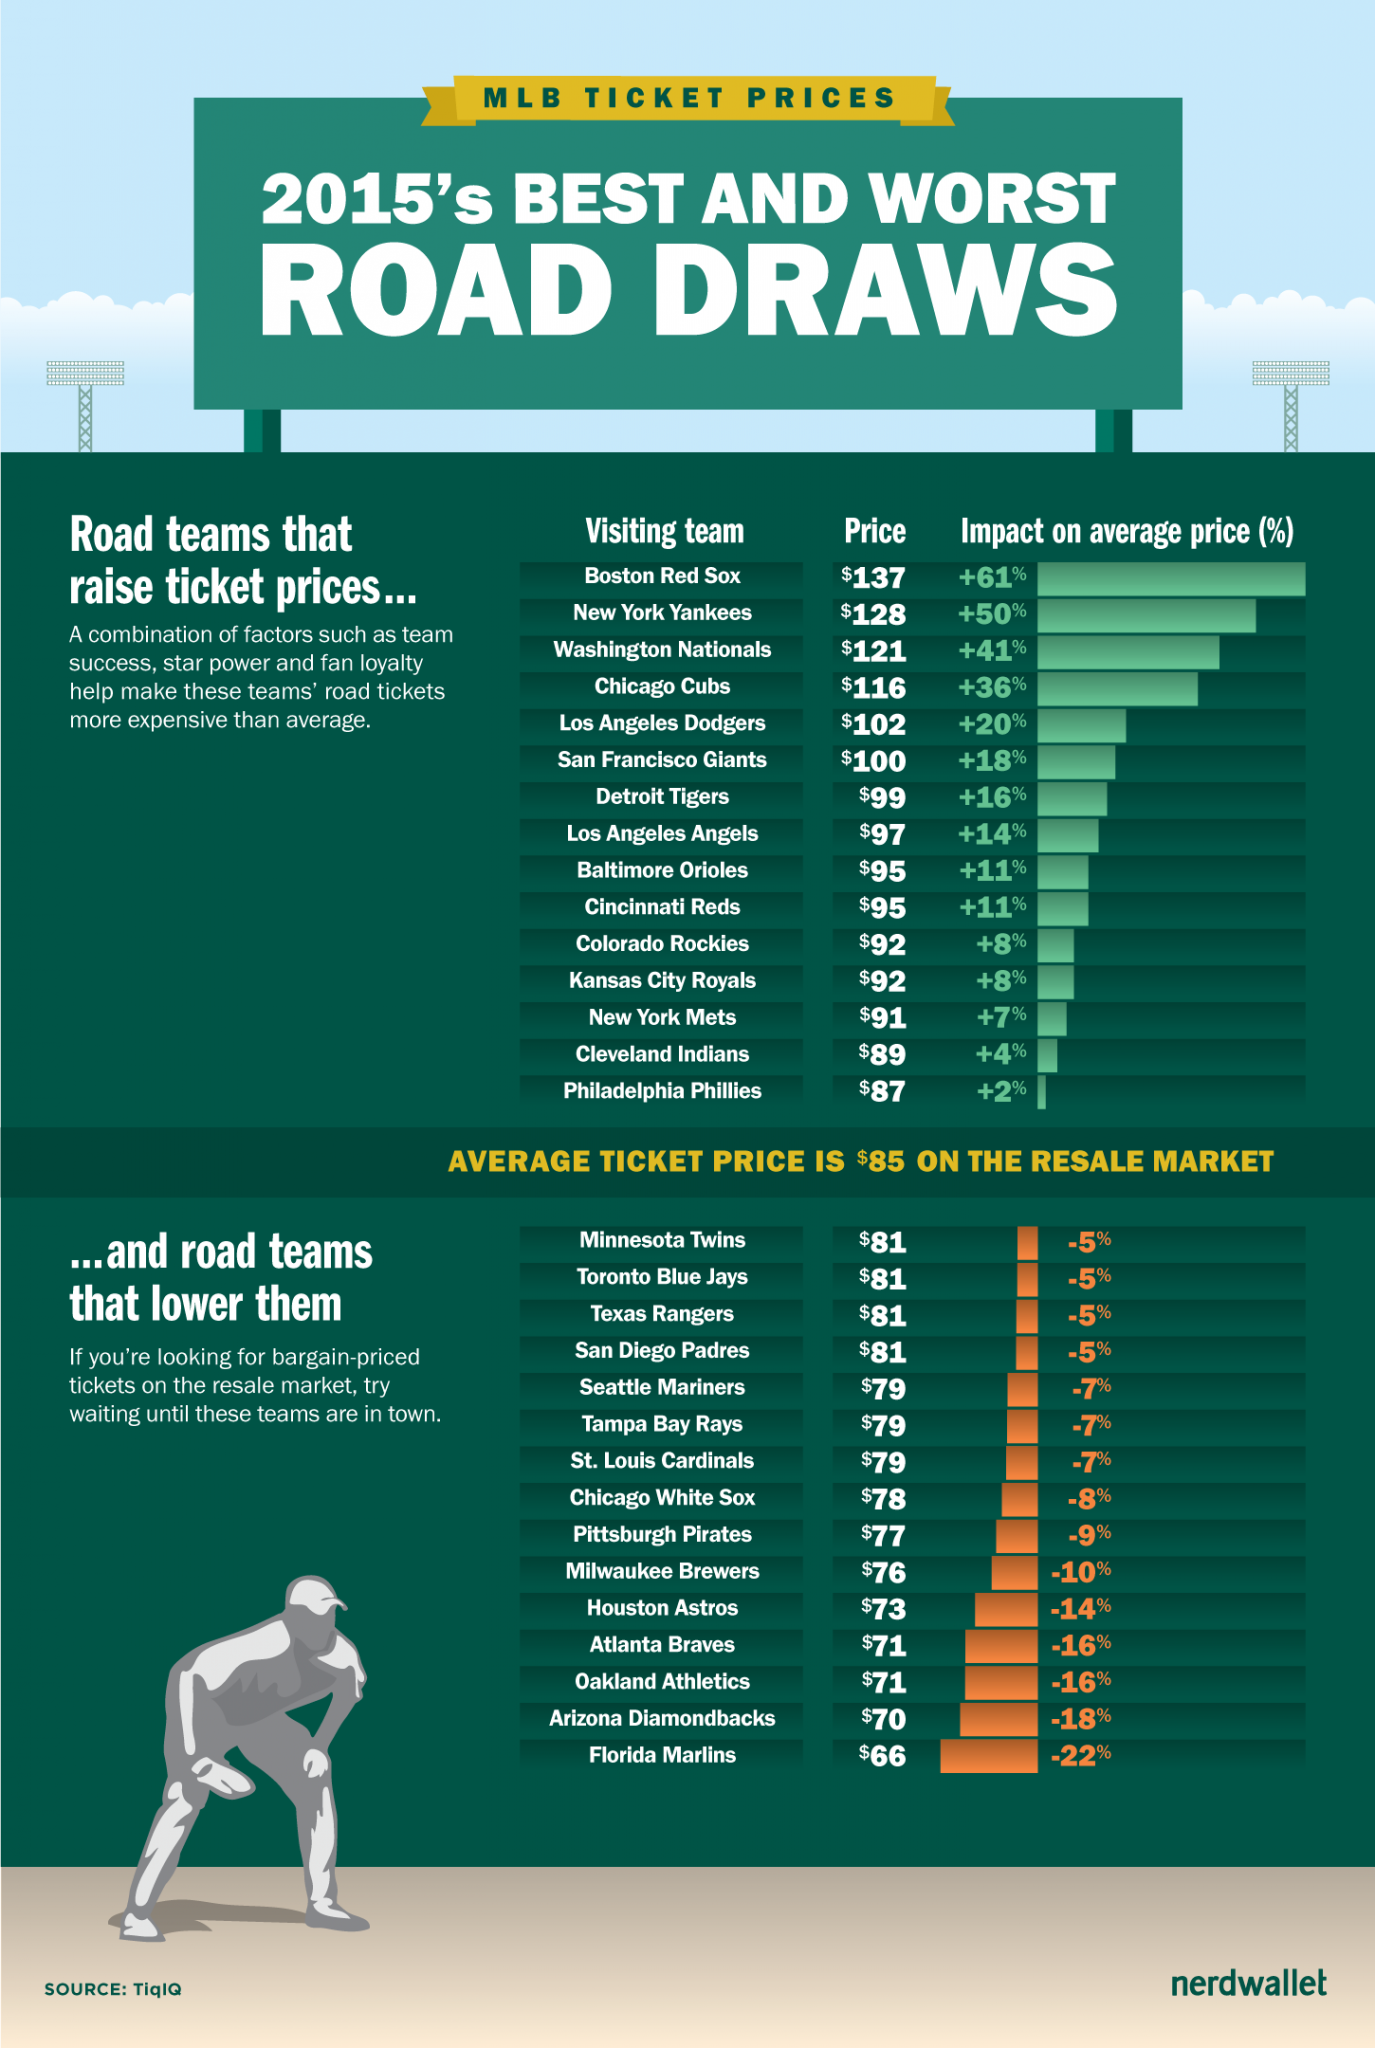 MLB Ticket Prices: Best and Worst Road Draws of 2015